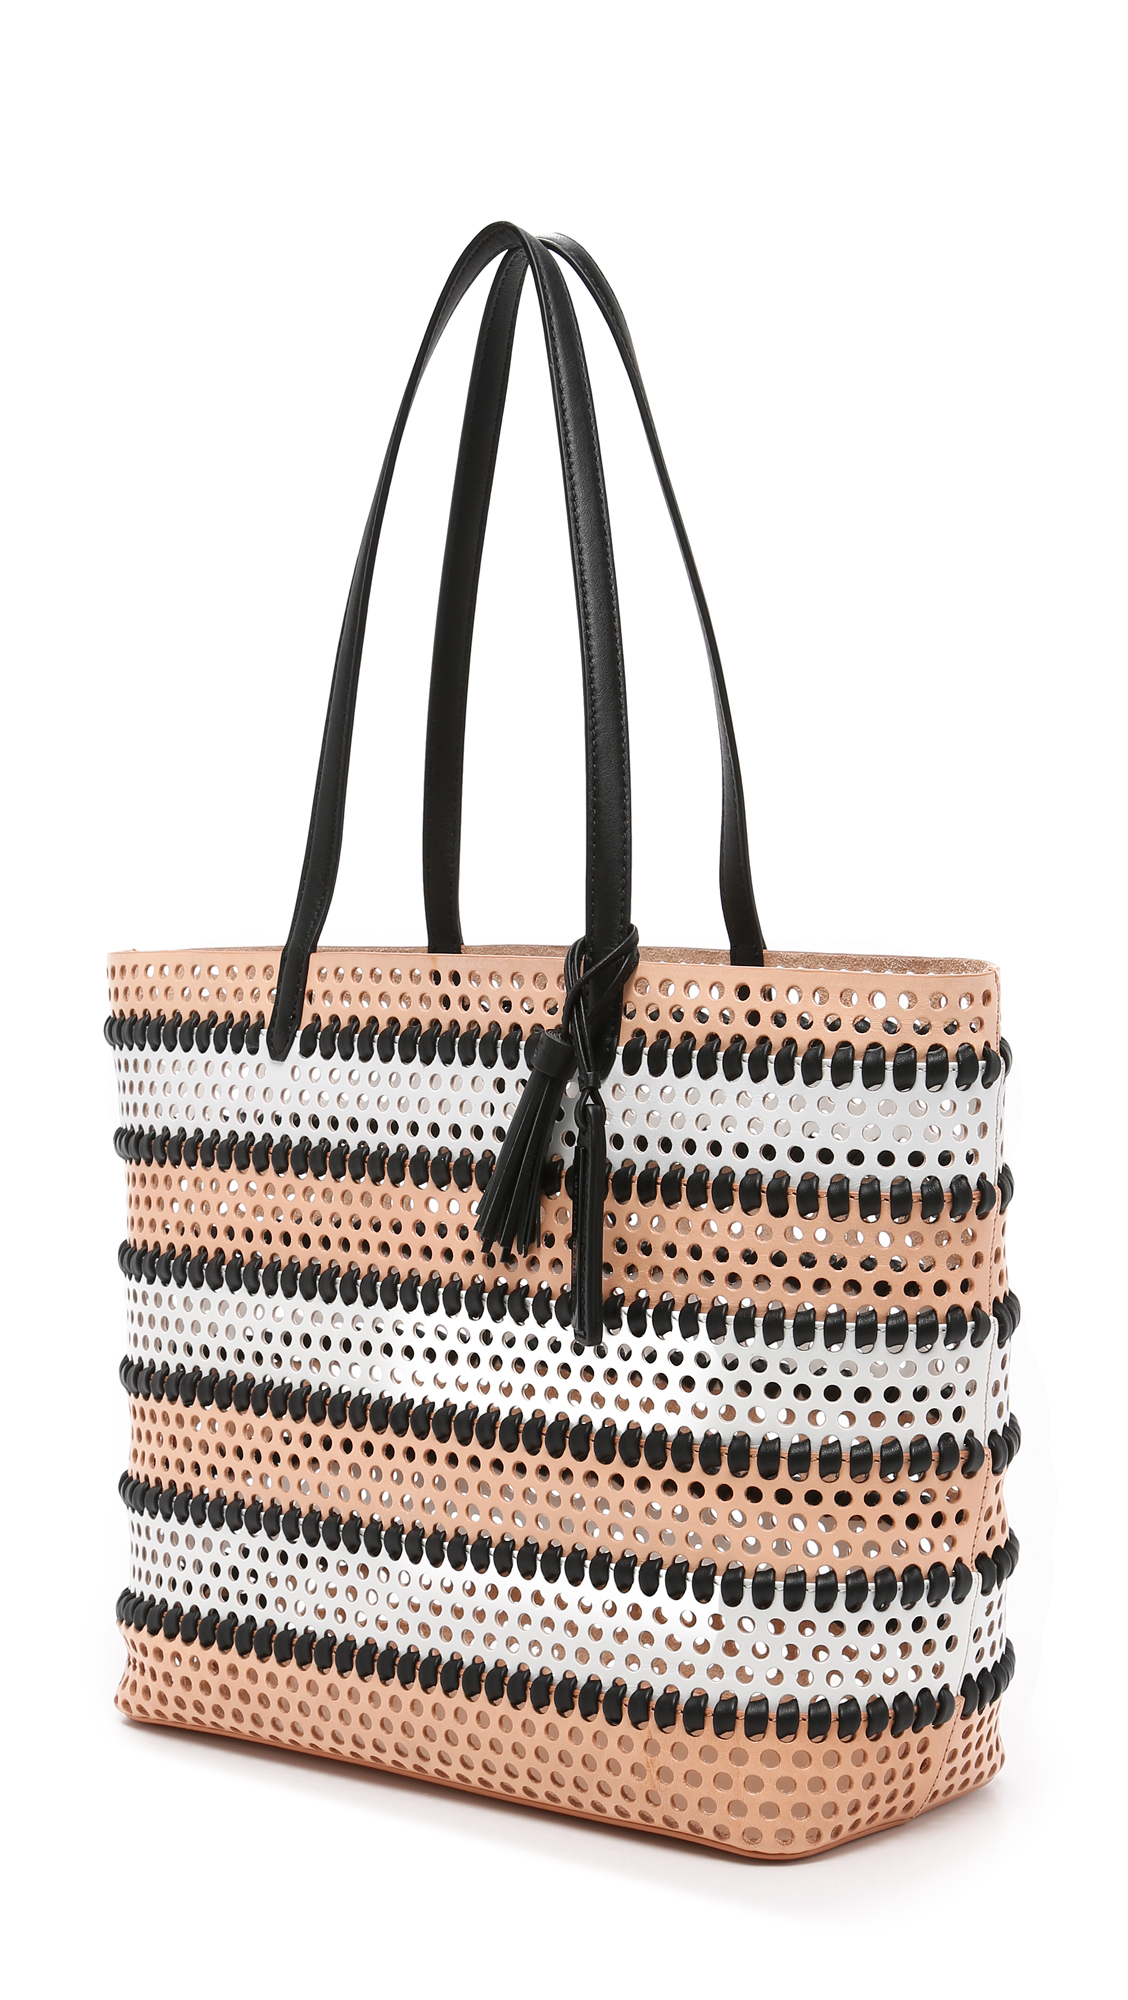 Loeffler Randall Leather Perforated Beach Tote in Nude/White/Black (Natural)